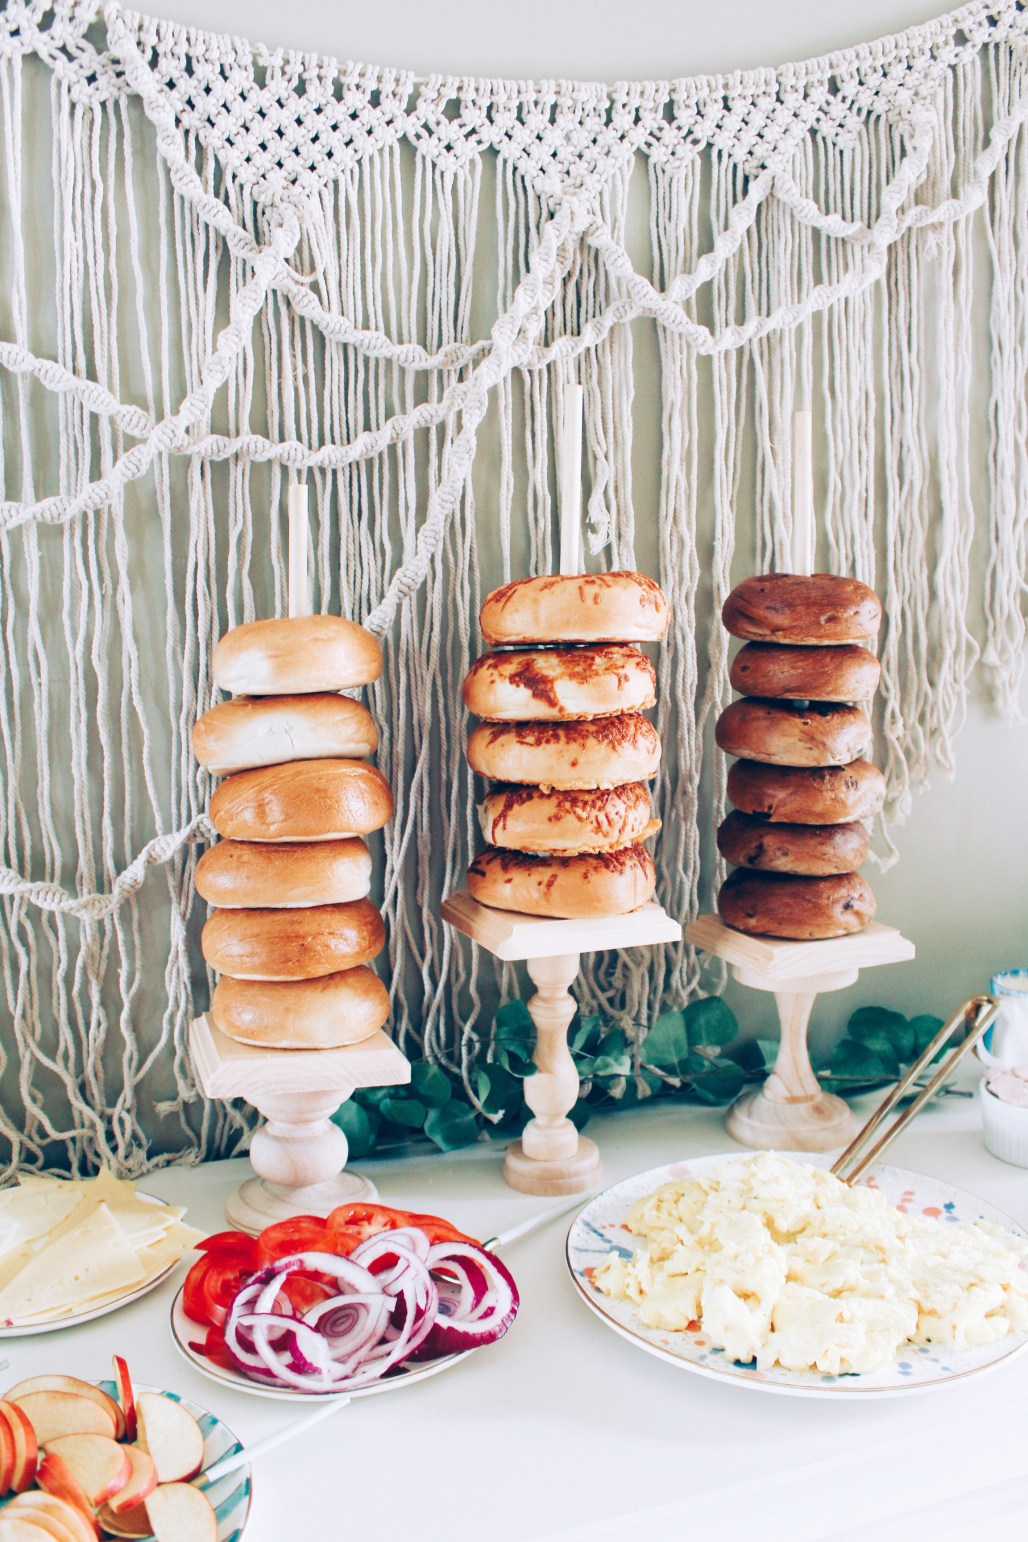 Mixed Gender Baby Shower Brunch Mint, Coral, Turquoise Bagel Towers